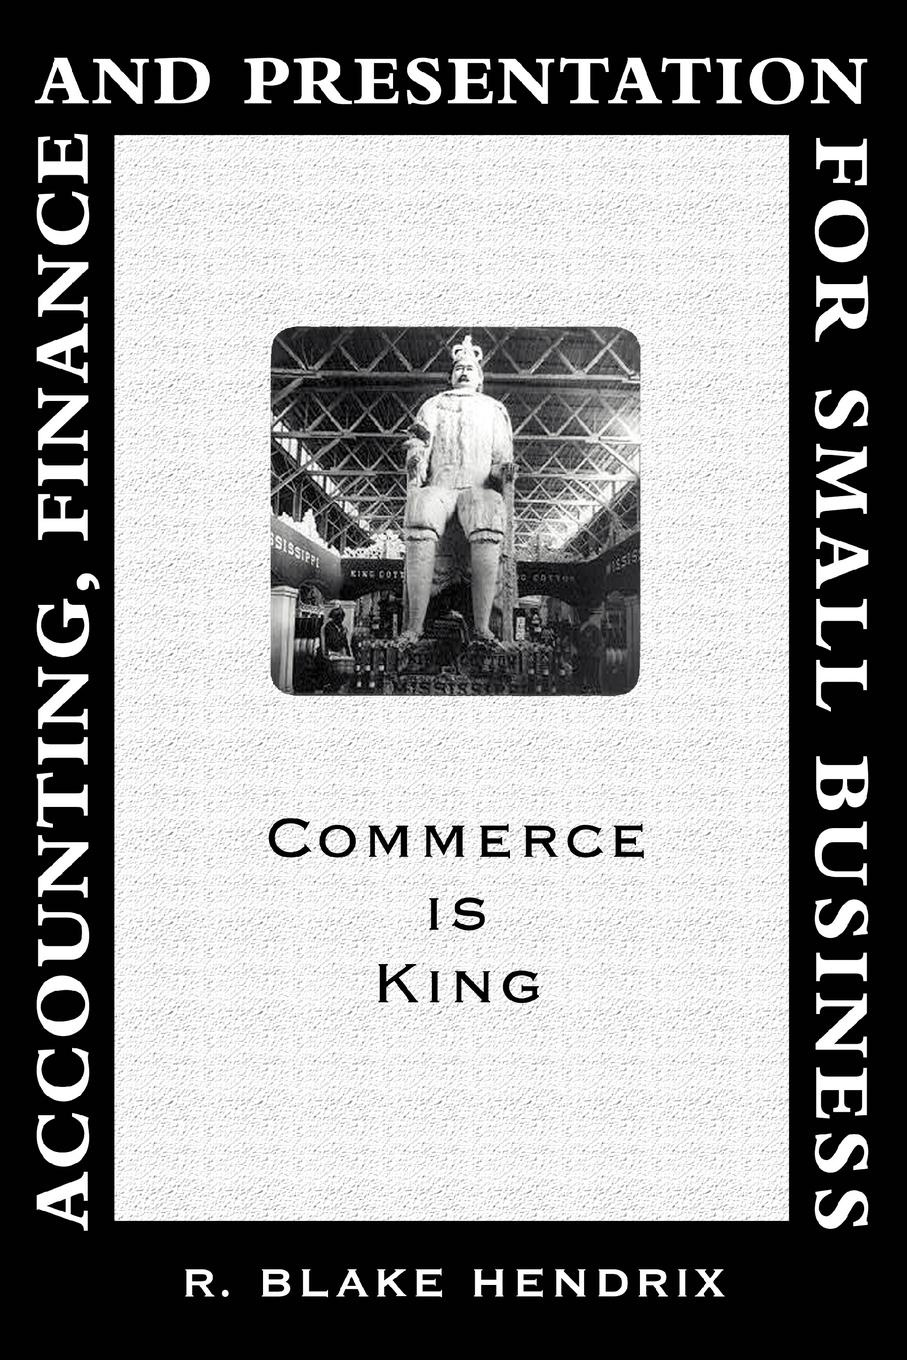 R. Blake Hendrix. Accounting, Finance and Presentation for Small Business. Commerce Is King